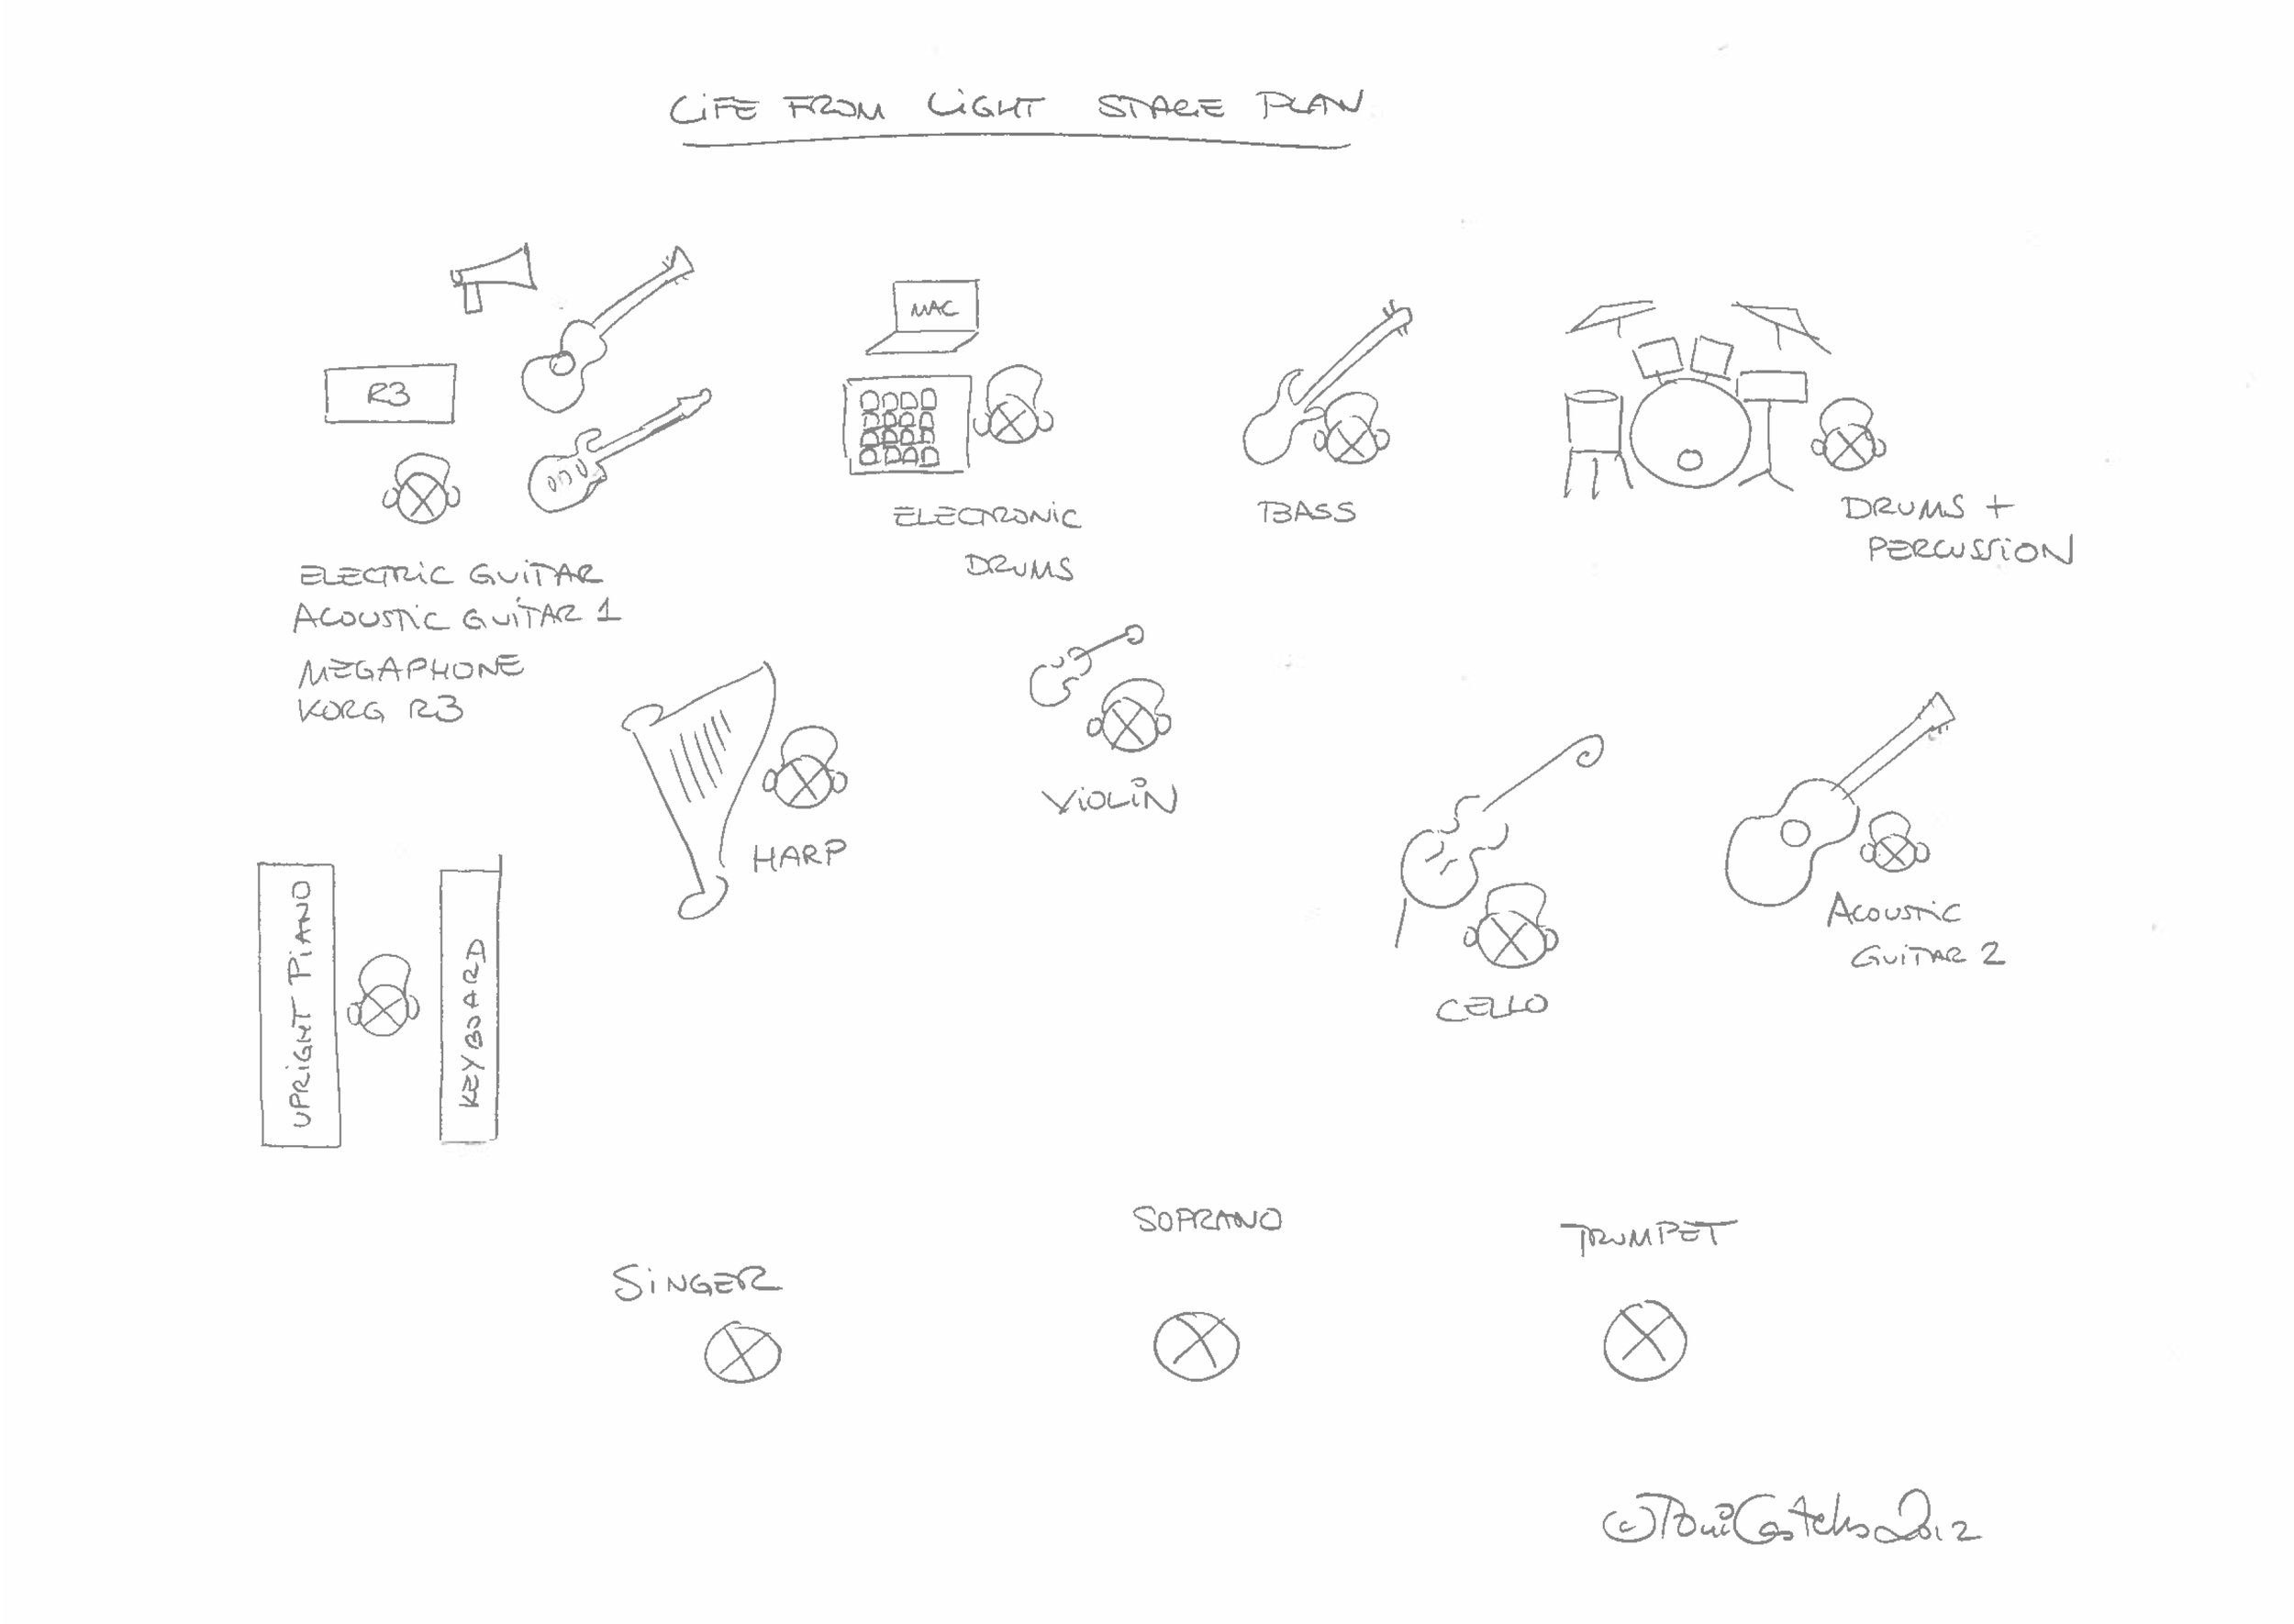 Life from Light Stage Plan